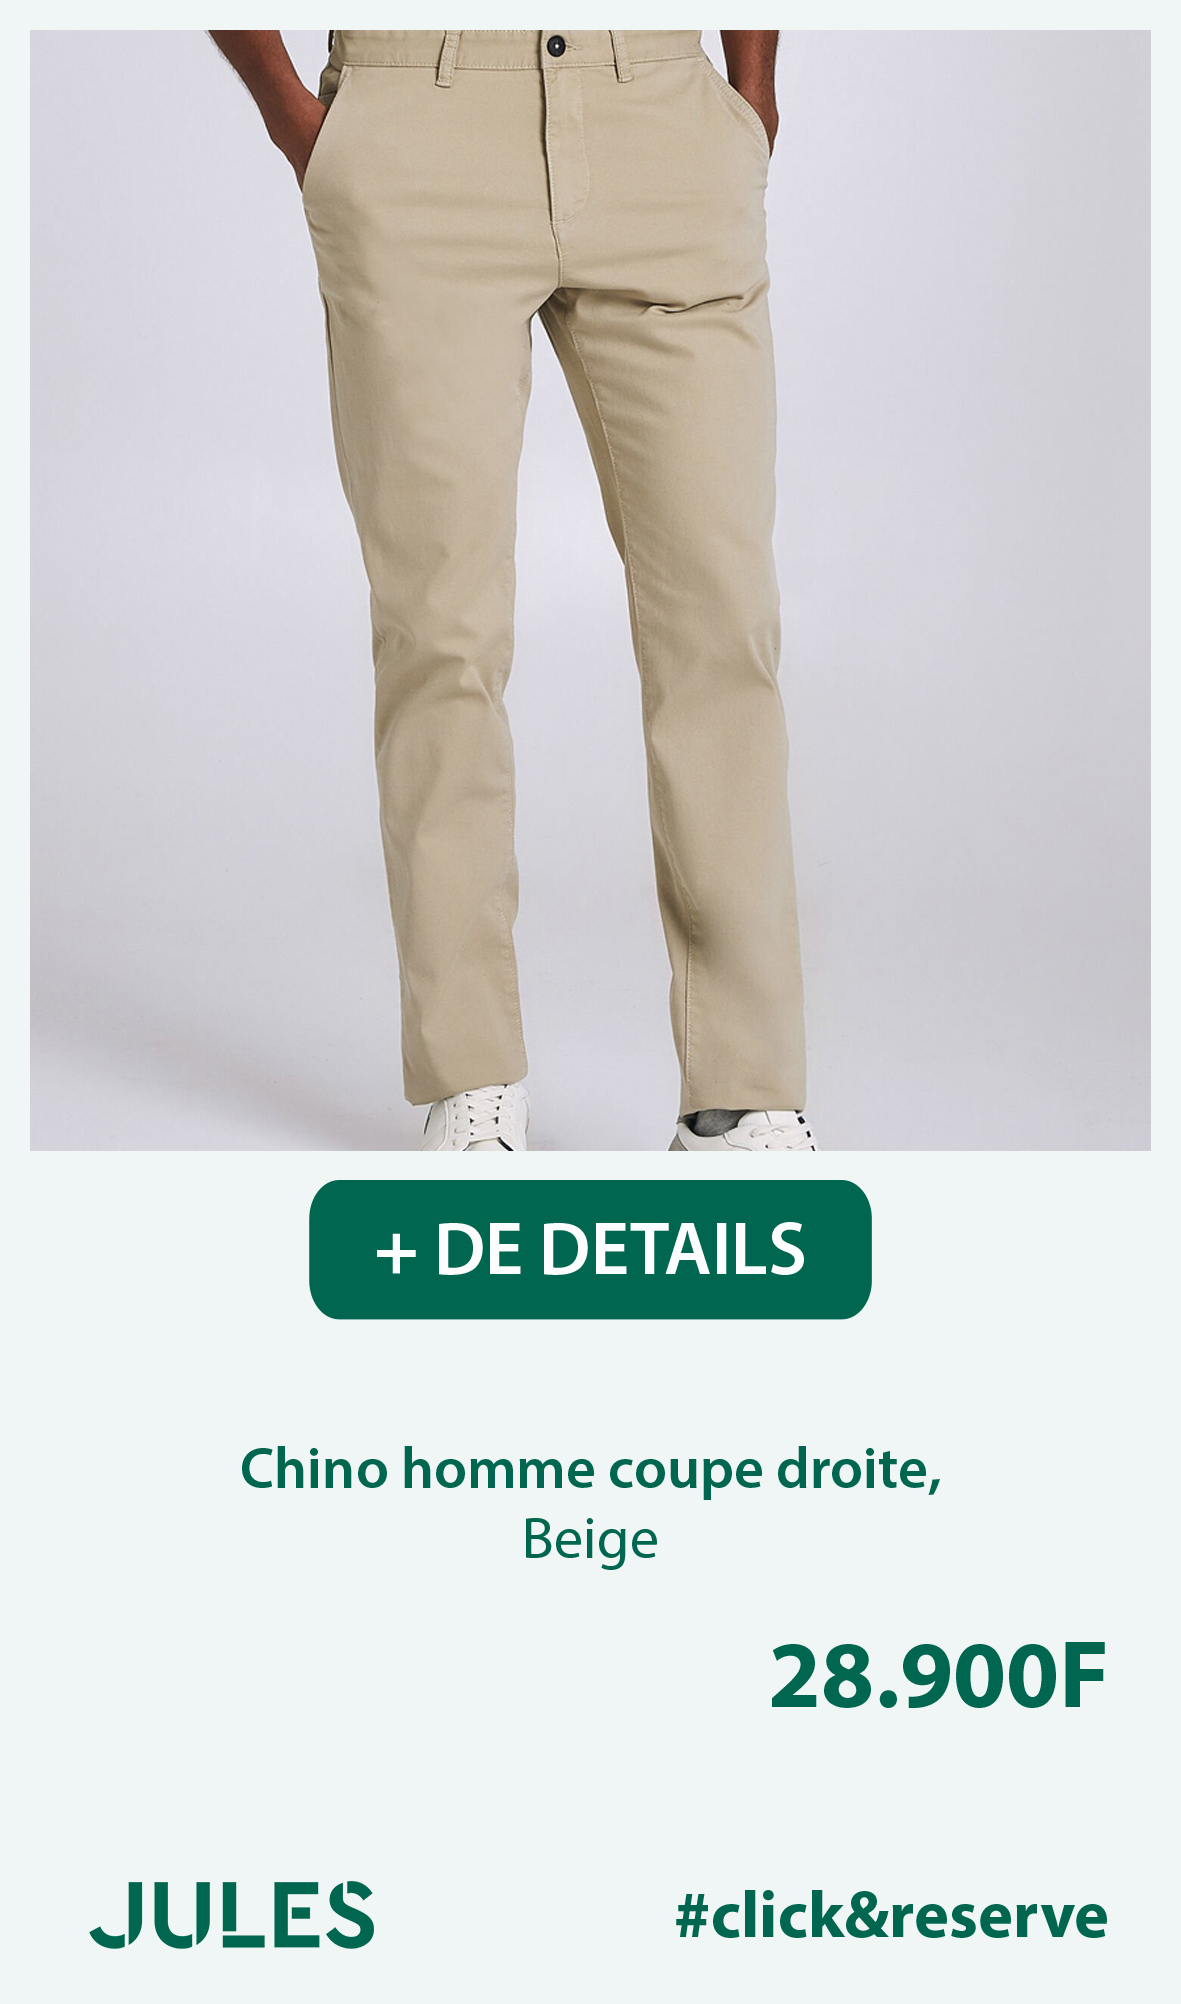 Chino homme coupe droite, Beige